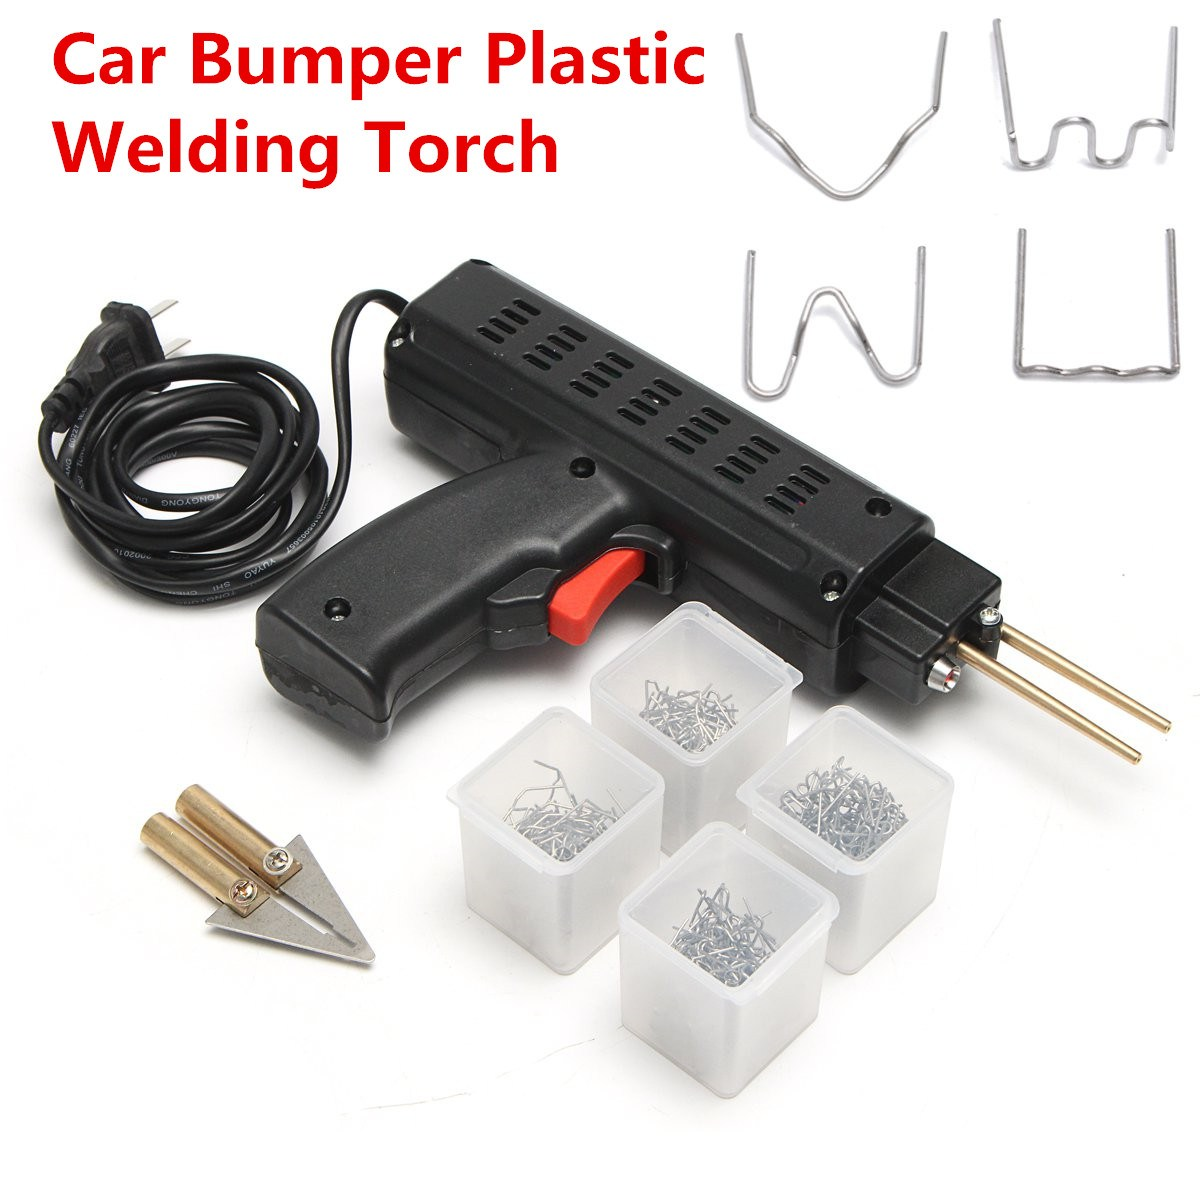 Welding Torch Repair Kit Car Auto Stapler Bumper Plastic Tool+ 200 Staples hot staple gun plastic repair kit staples plastic welding staples welding accessory st 600c